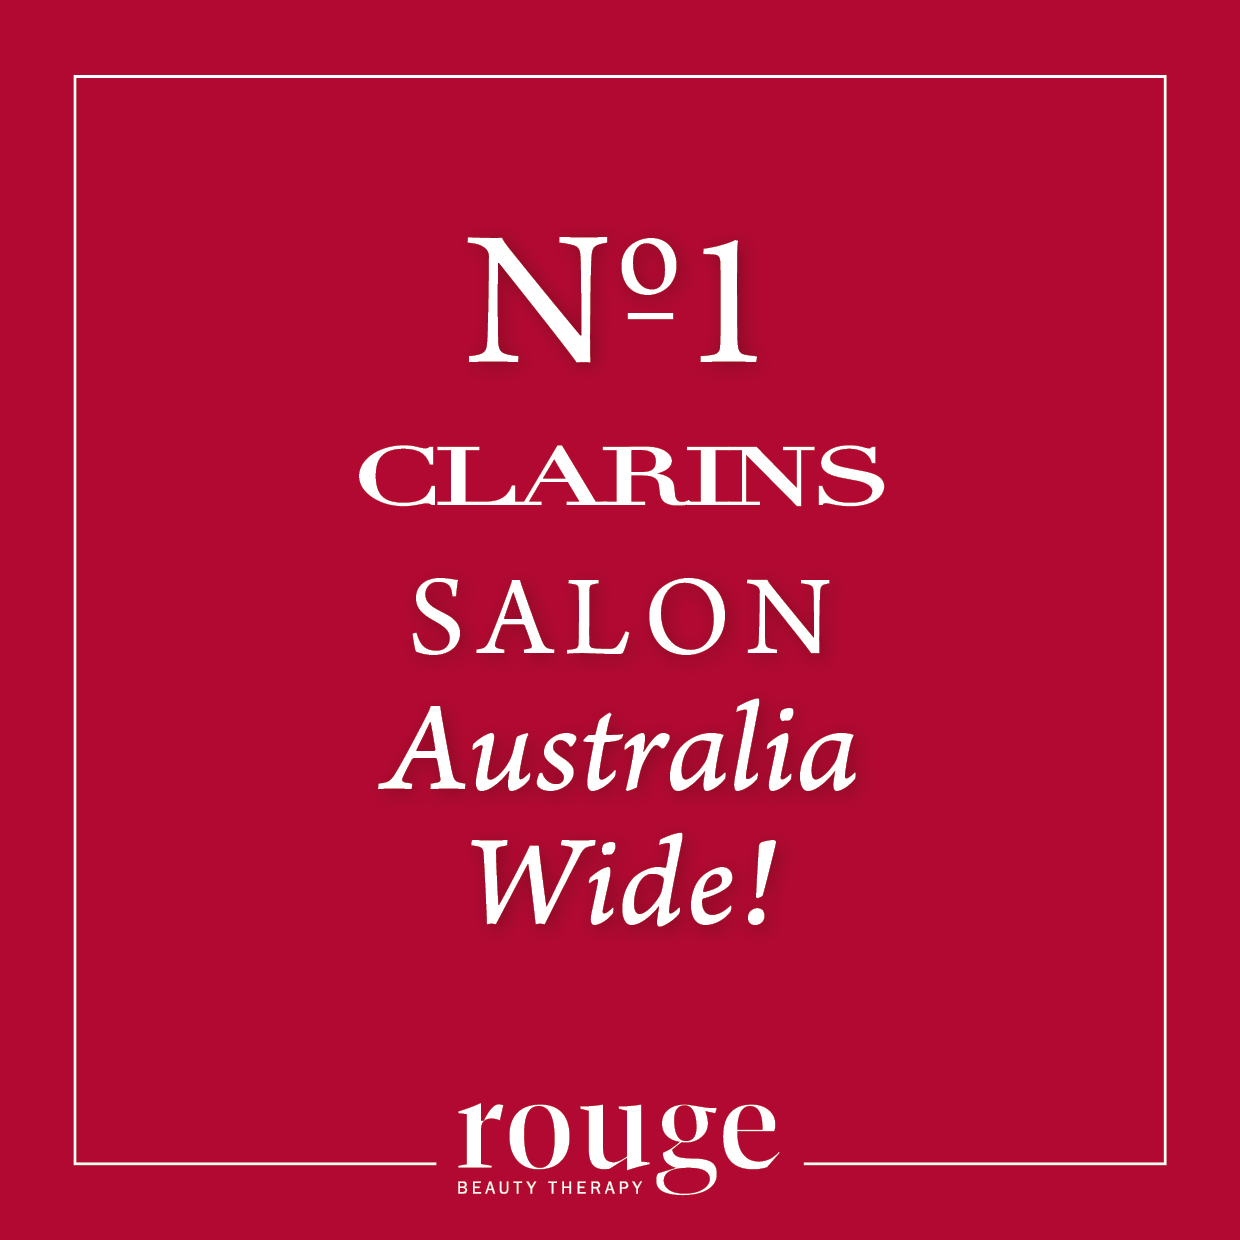 No1 Clarins Salon - Rouge Beauty Therapy